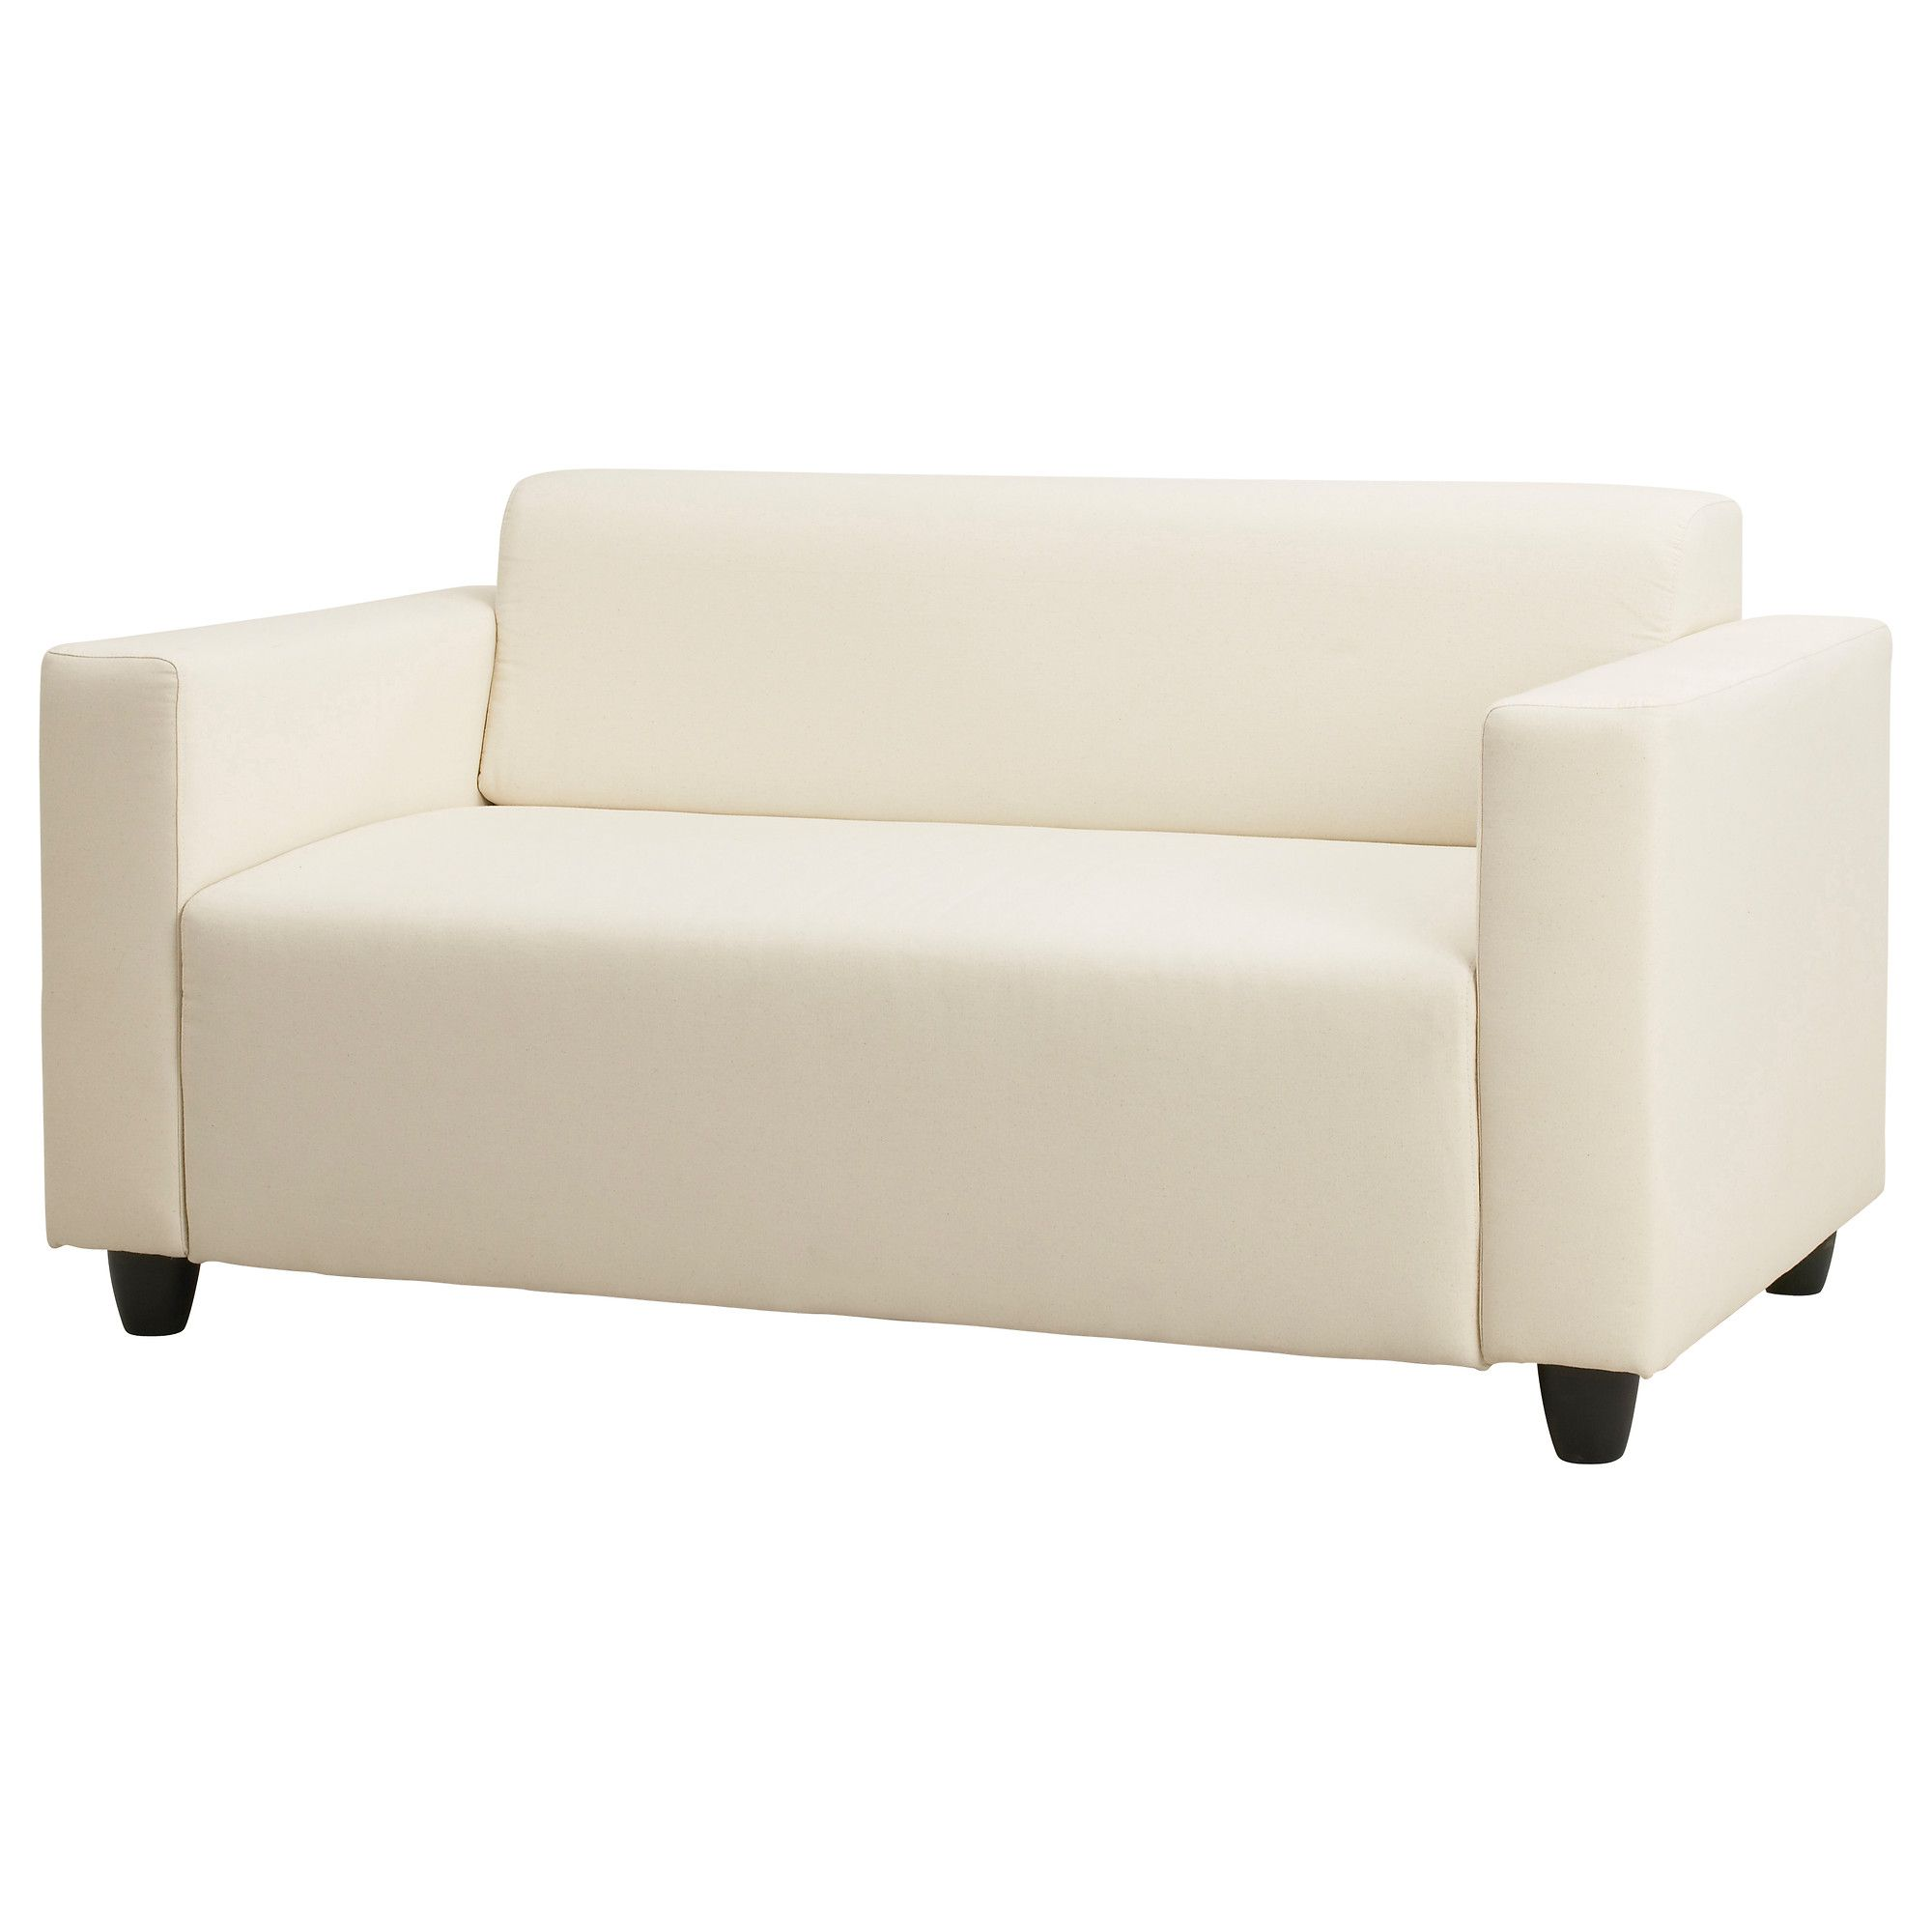 Klobo two seat sofa ikea 179 lussebo natural only Sofa depth